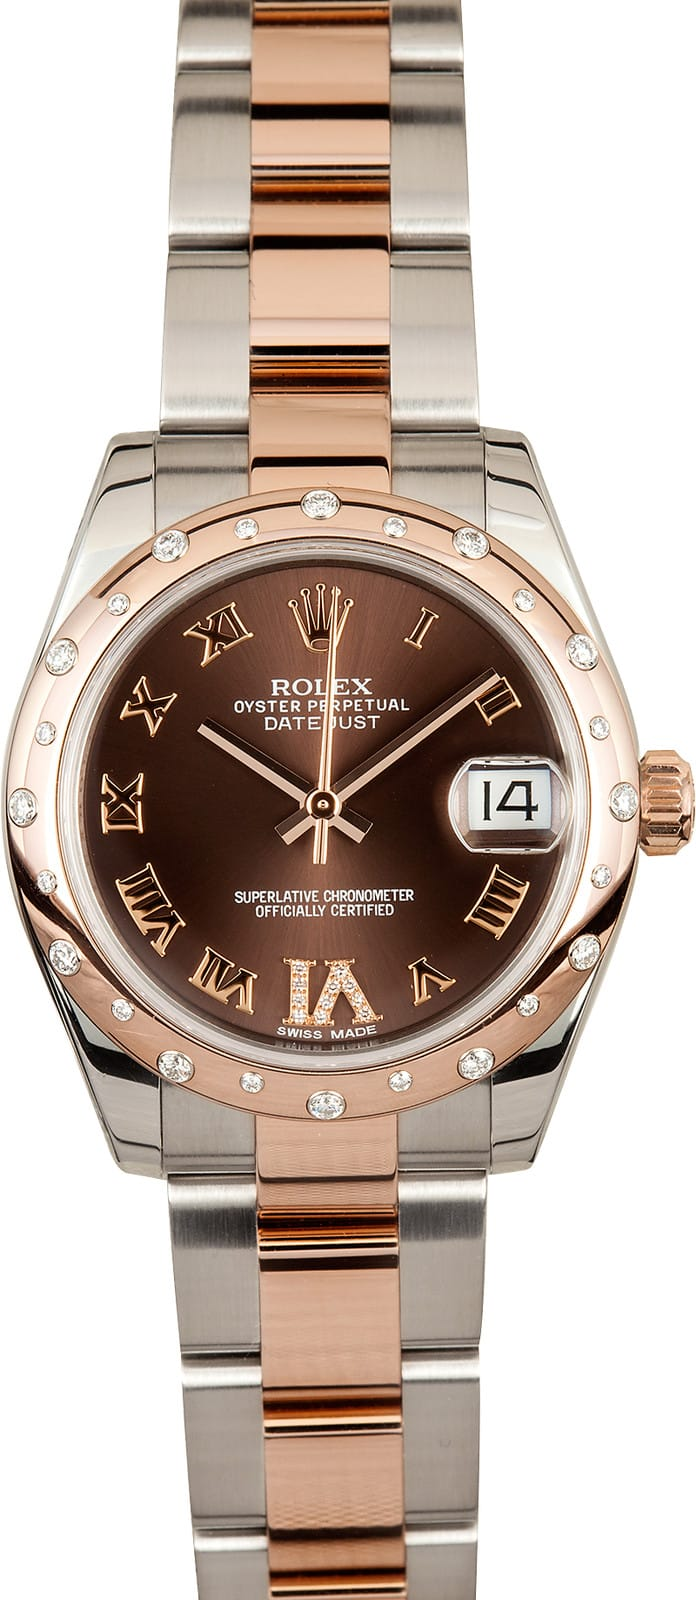 Used Rolex Submariner >> Rolex Mid Size Ladies Datejust 178341 - Save At Bob's Watches